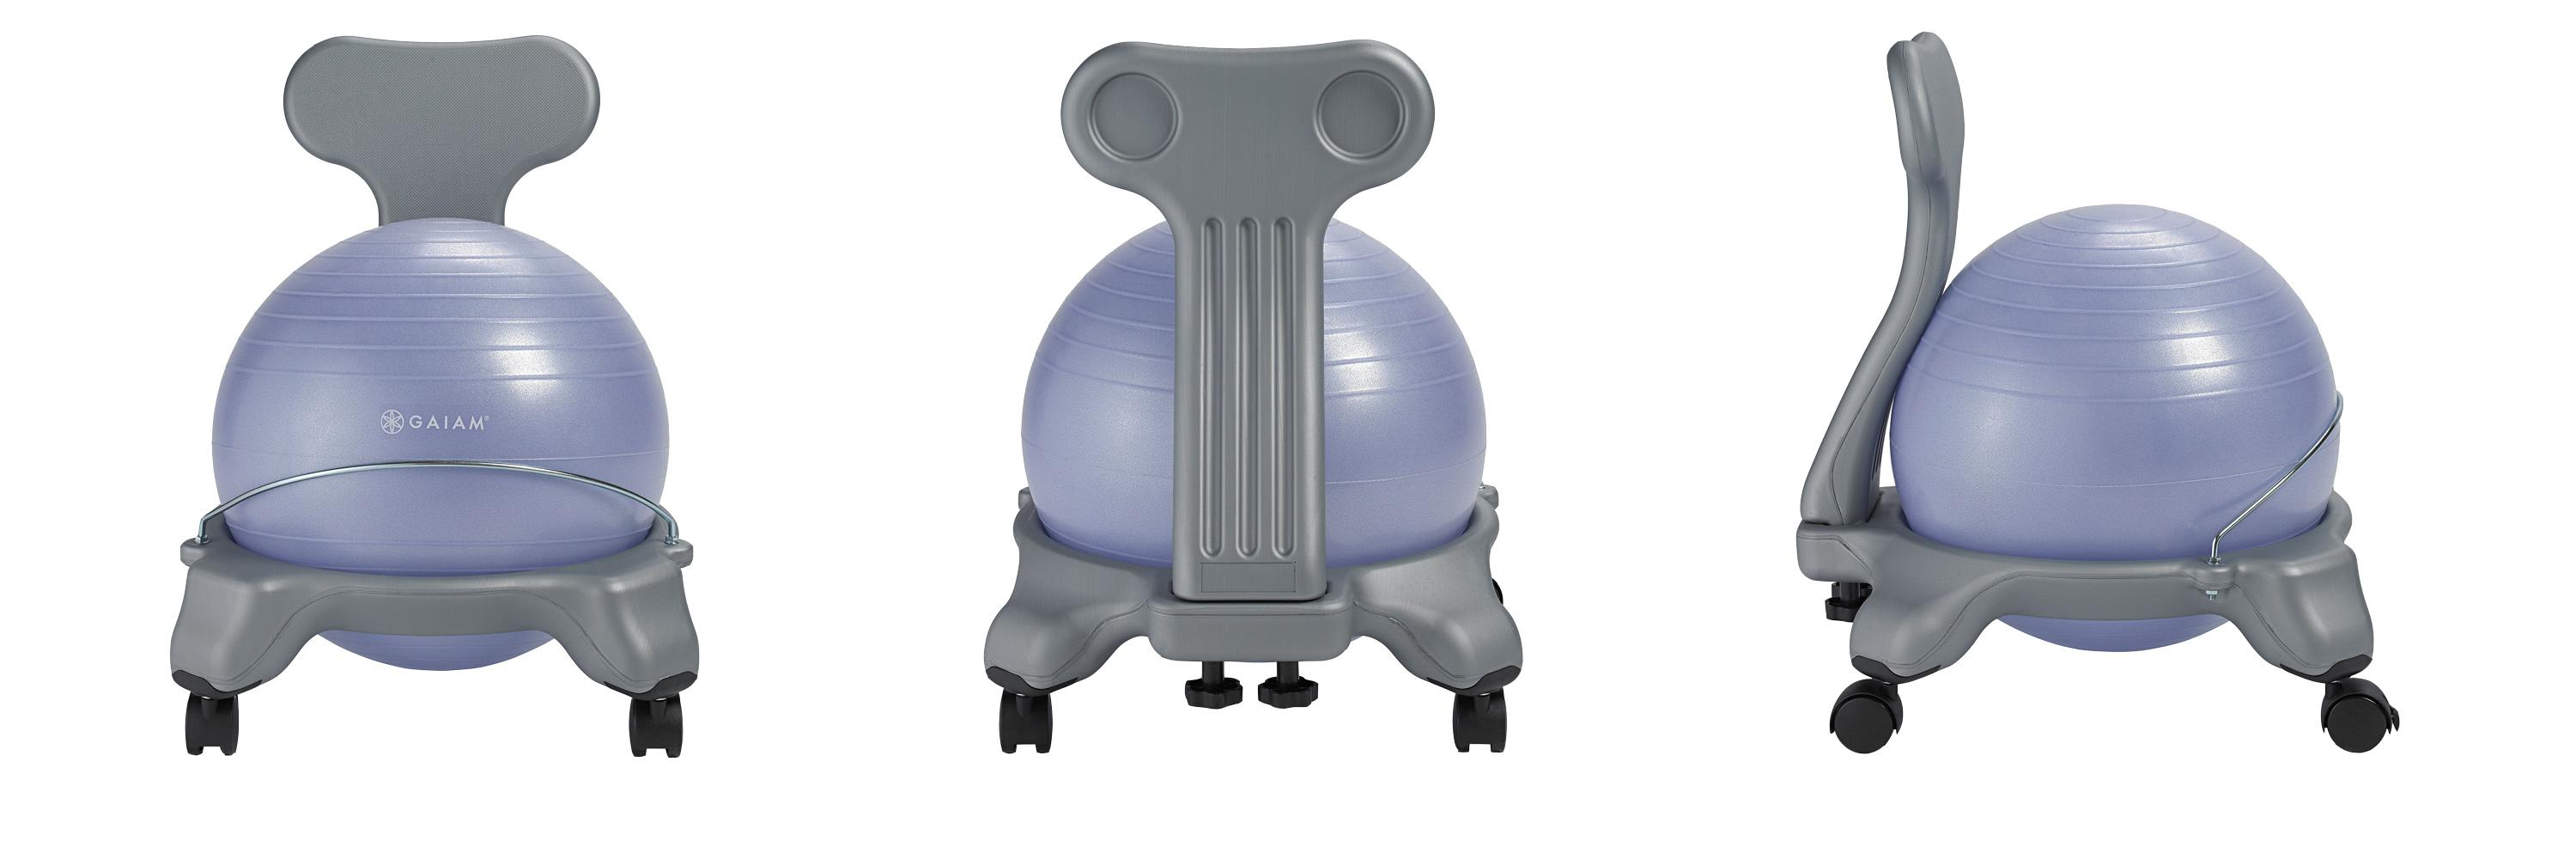 Amazon Com Gaiam Kids Balance Ball Chair Classic